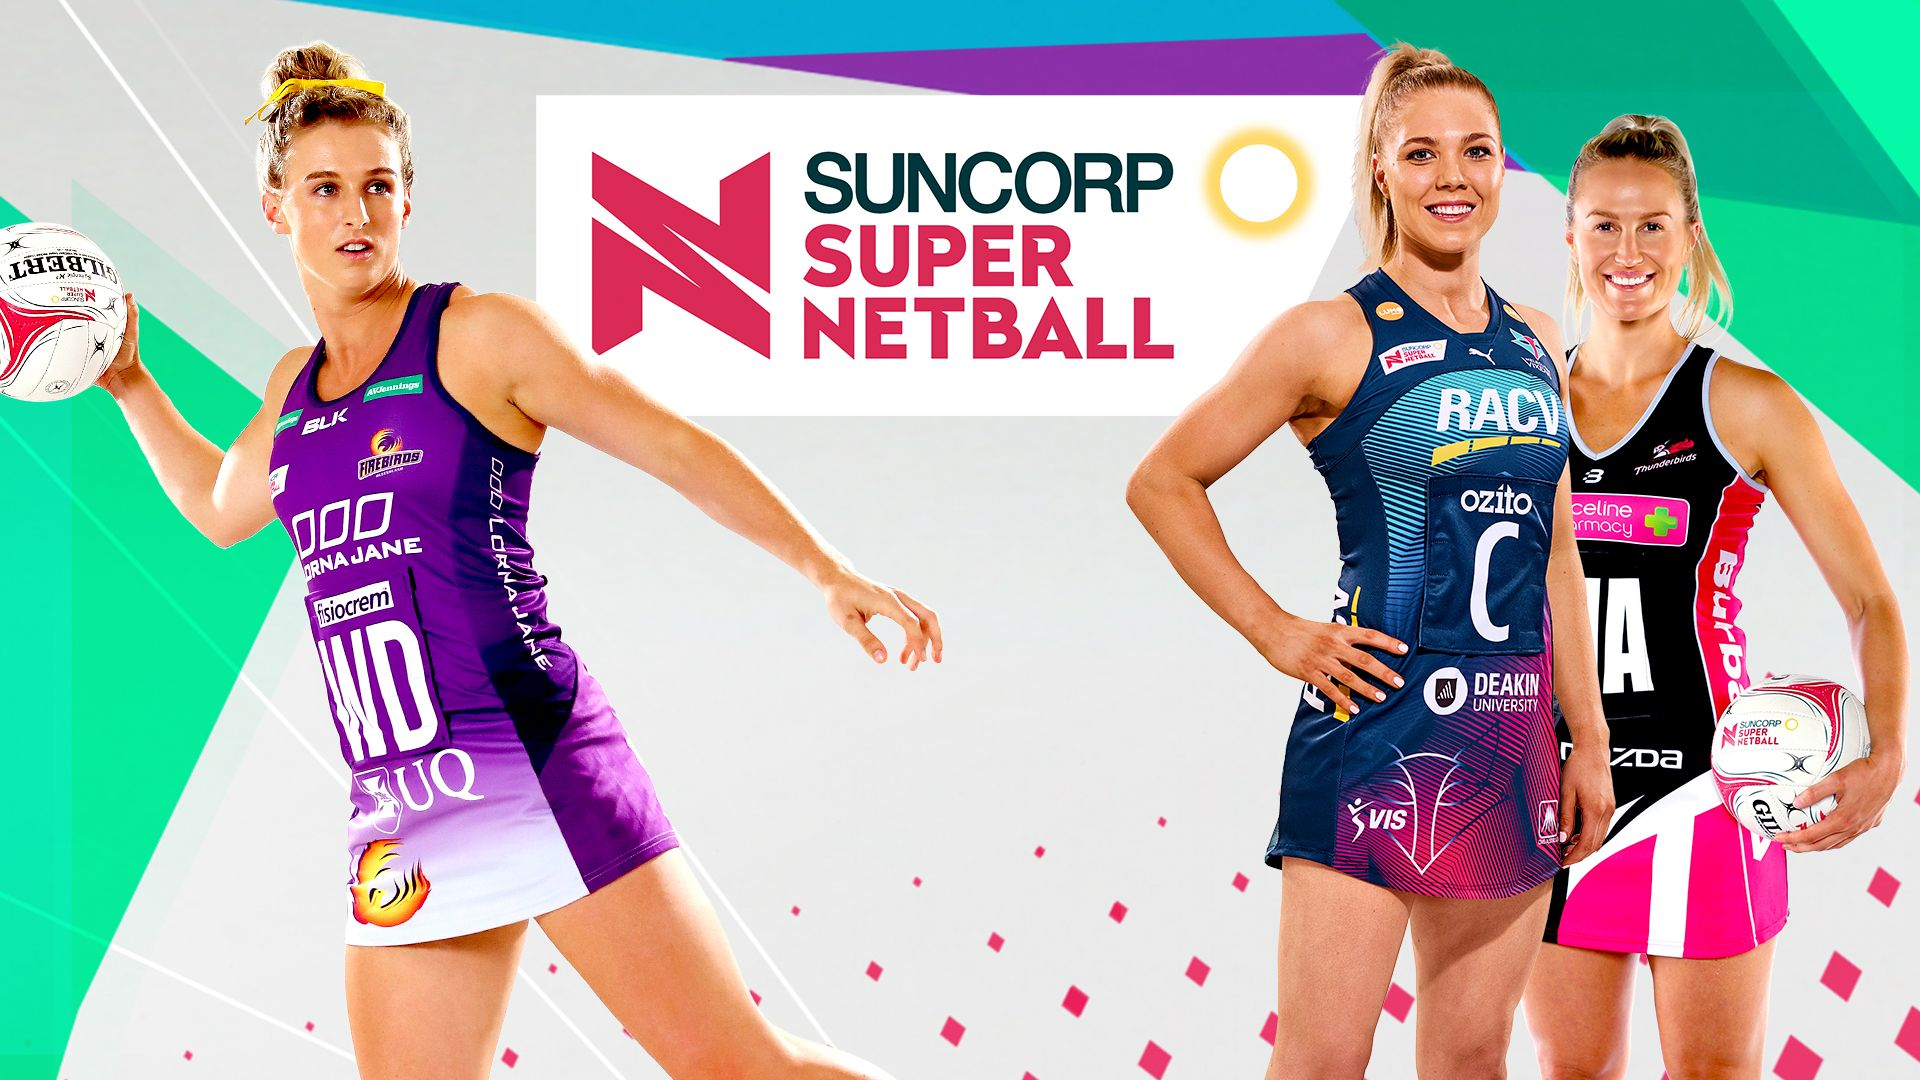 Suncorp Super Netball Source: 9now